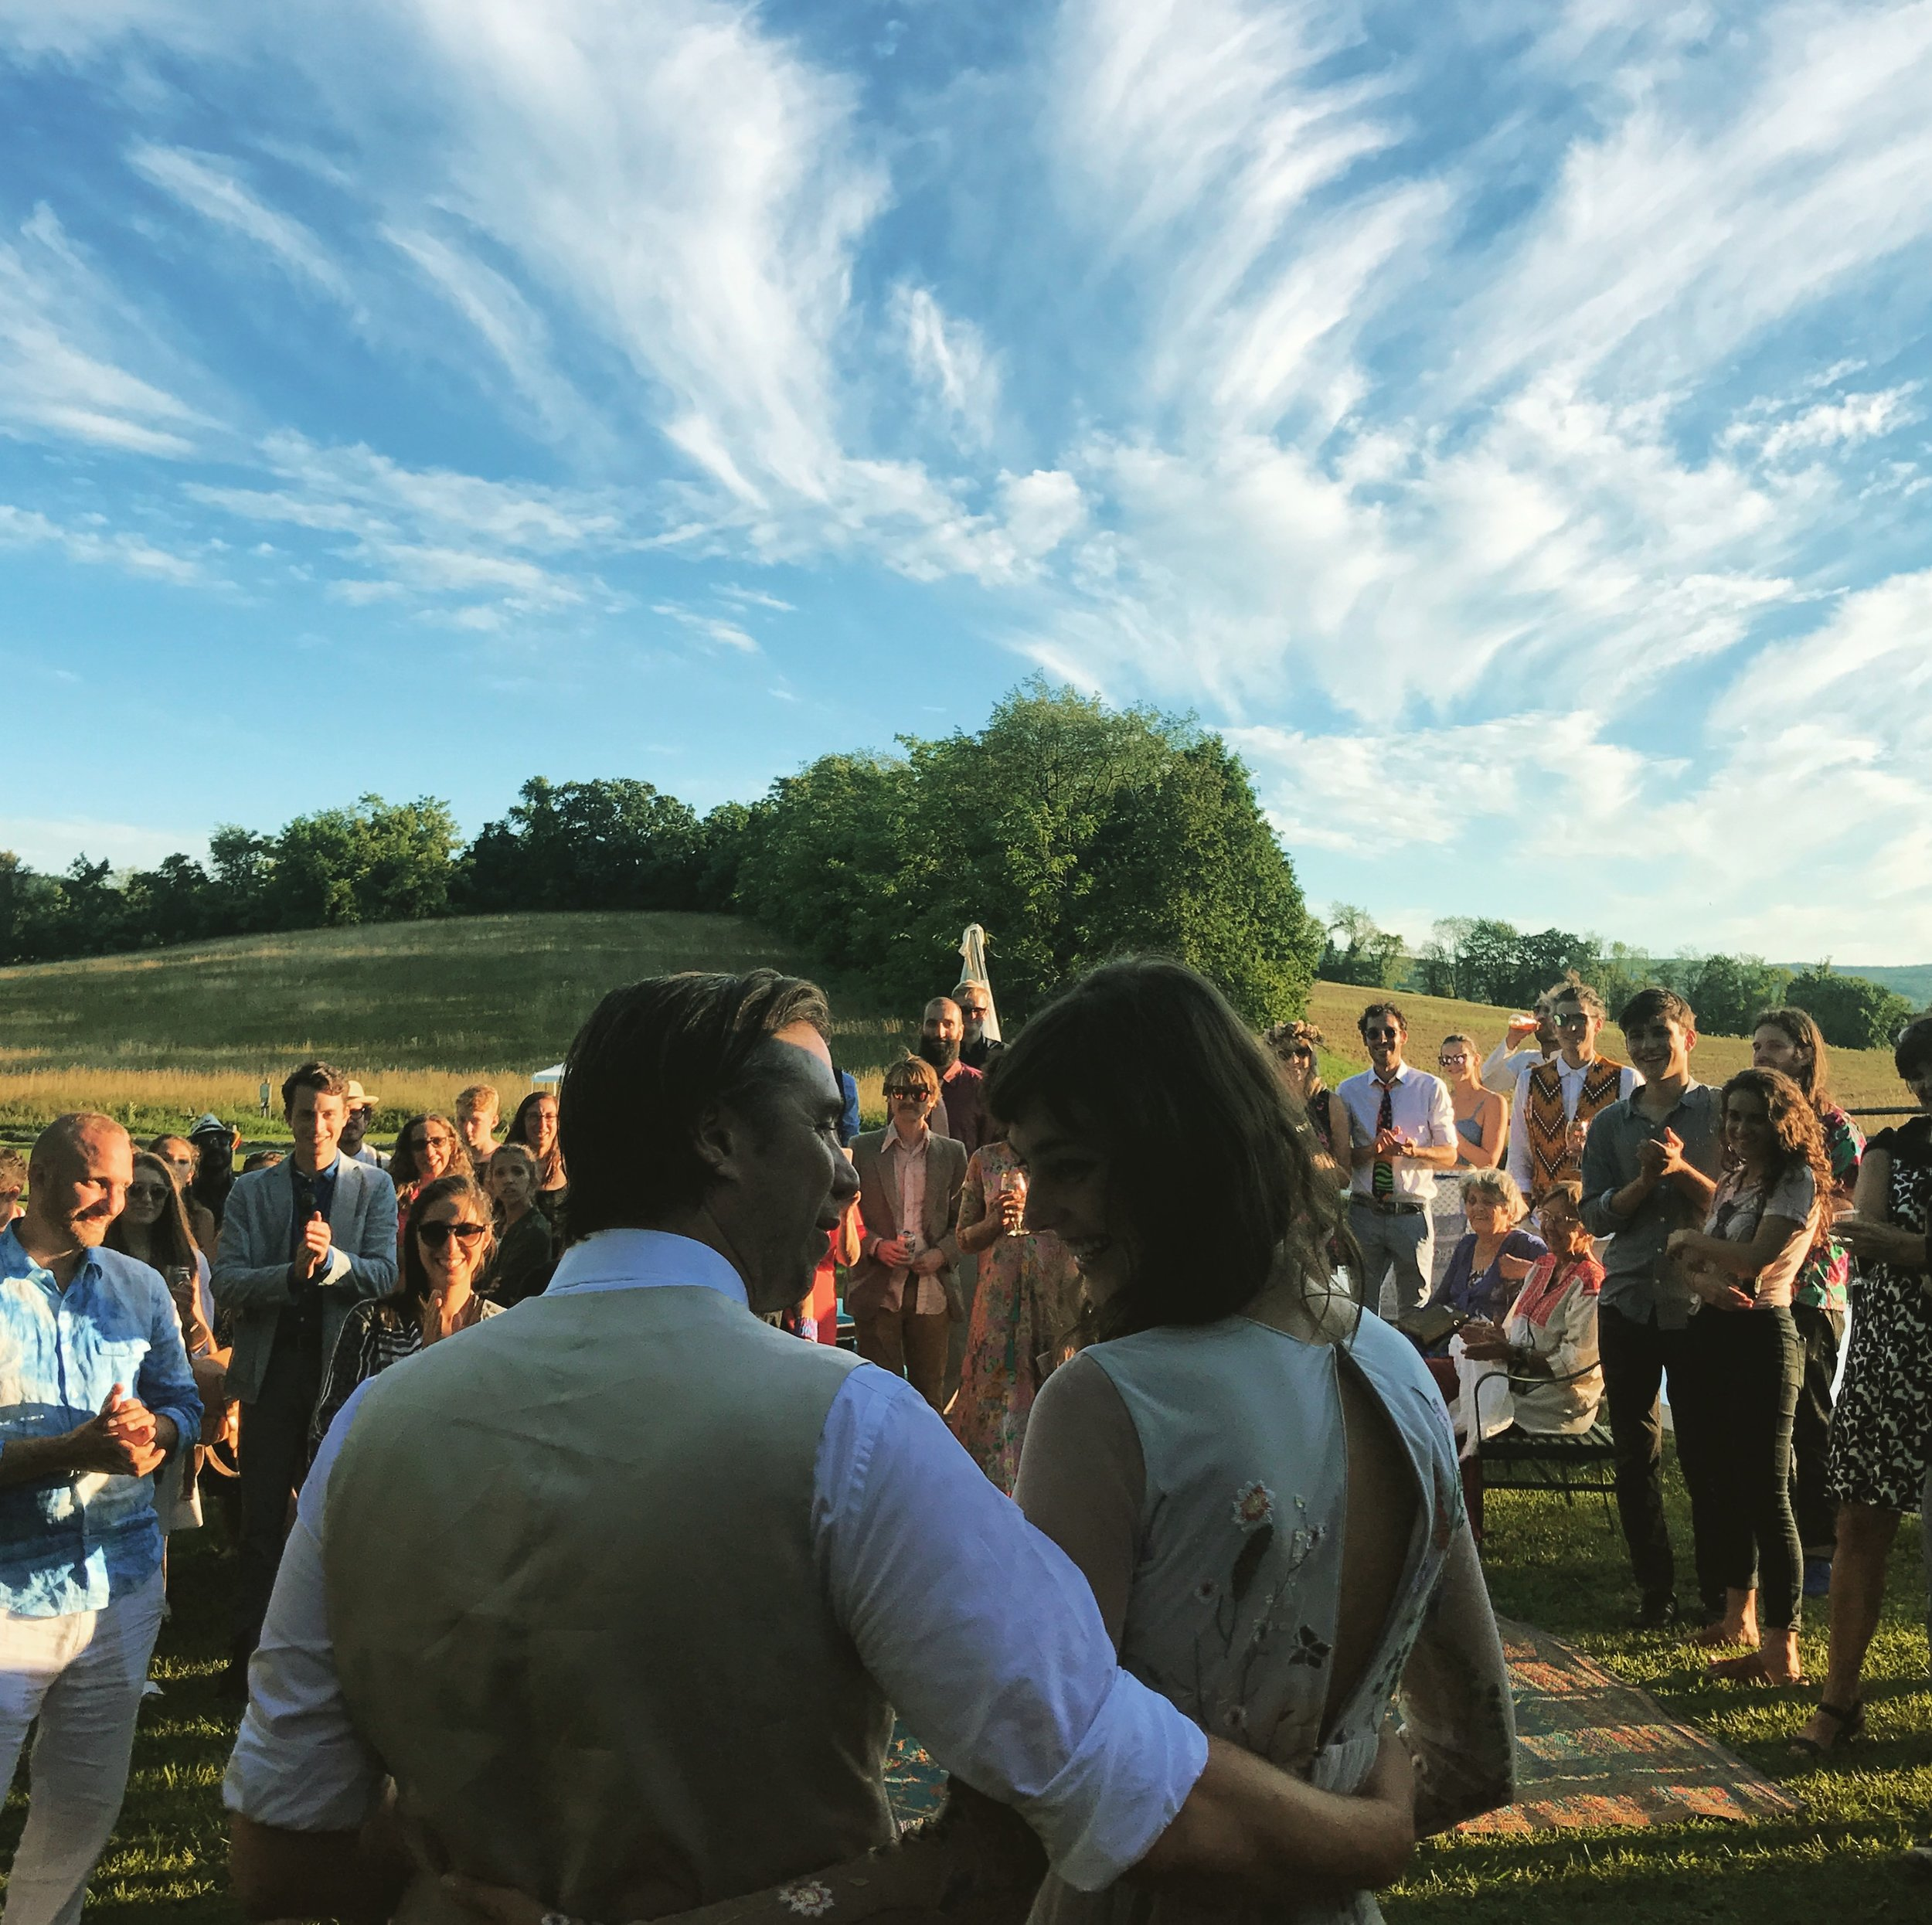 hudson-valley-farm-weddings-pioneer-farm-weddings-warwick-ny-just-married-beautiful-blue-sky.jpg